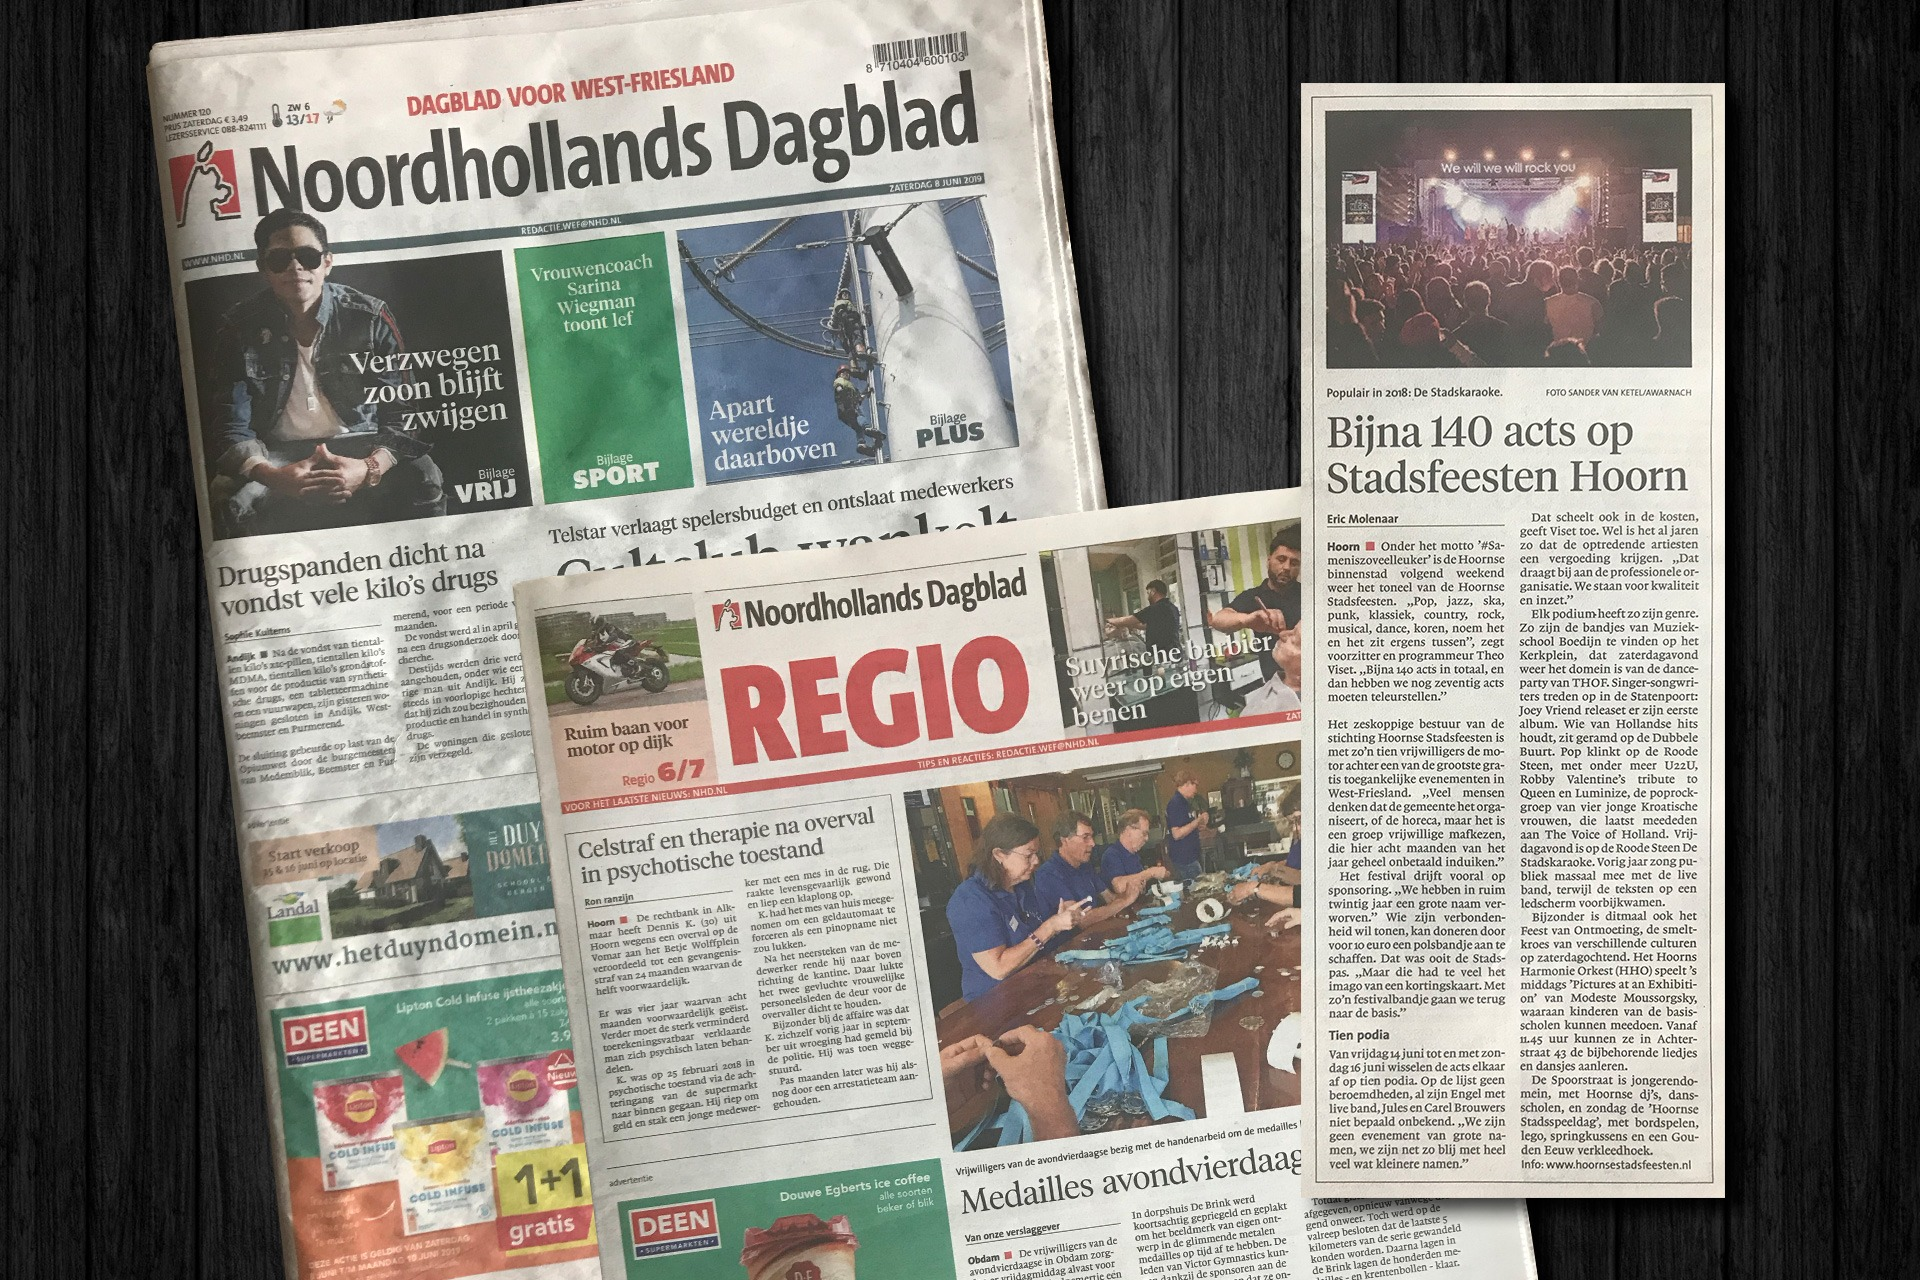 Hoornse Stadsfeesten in Noordhollands Dagblad